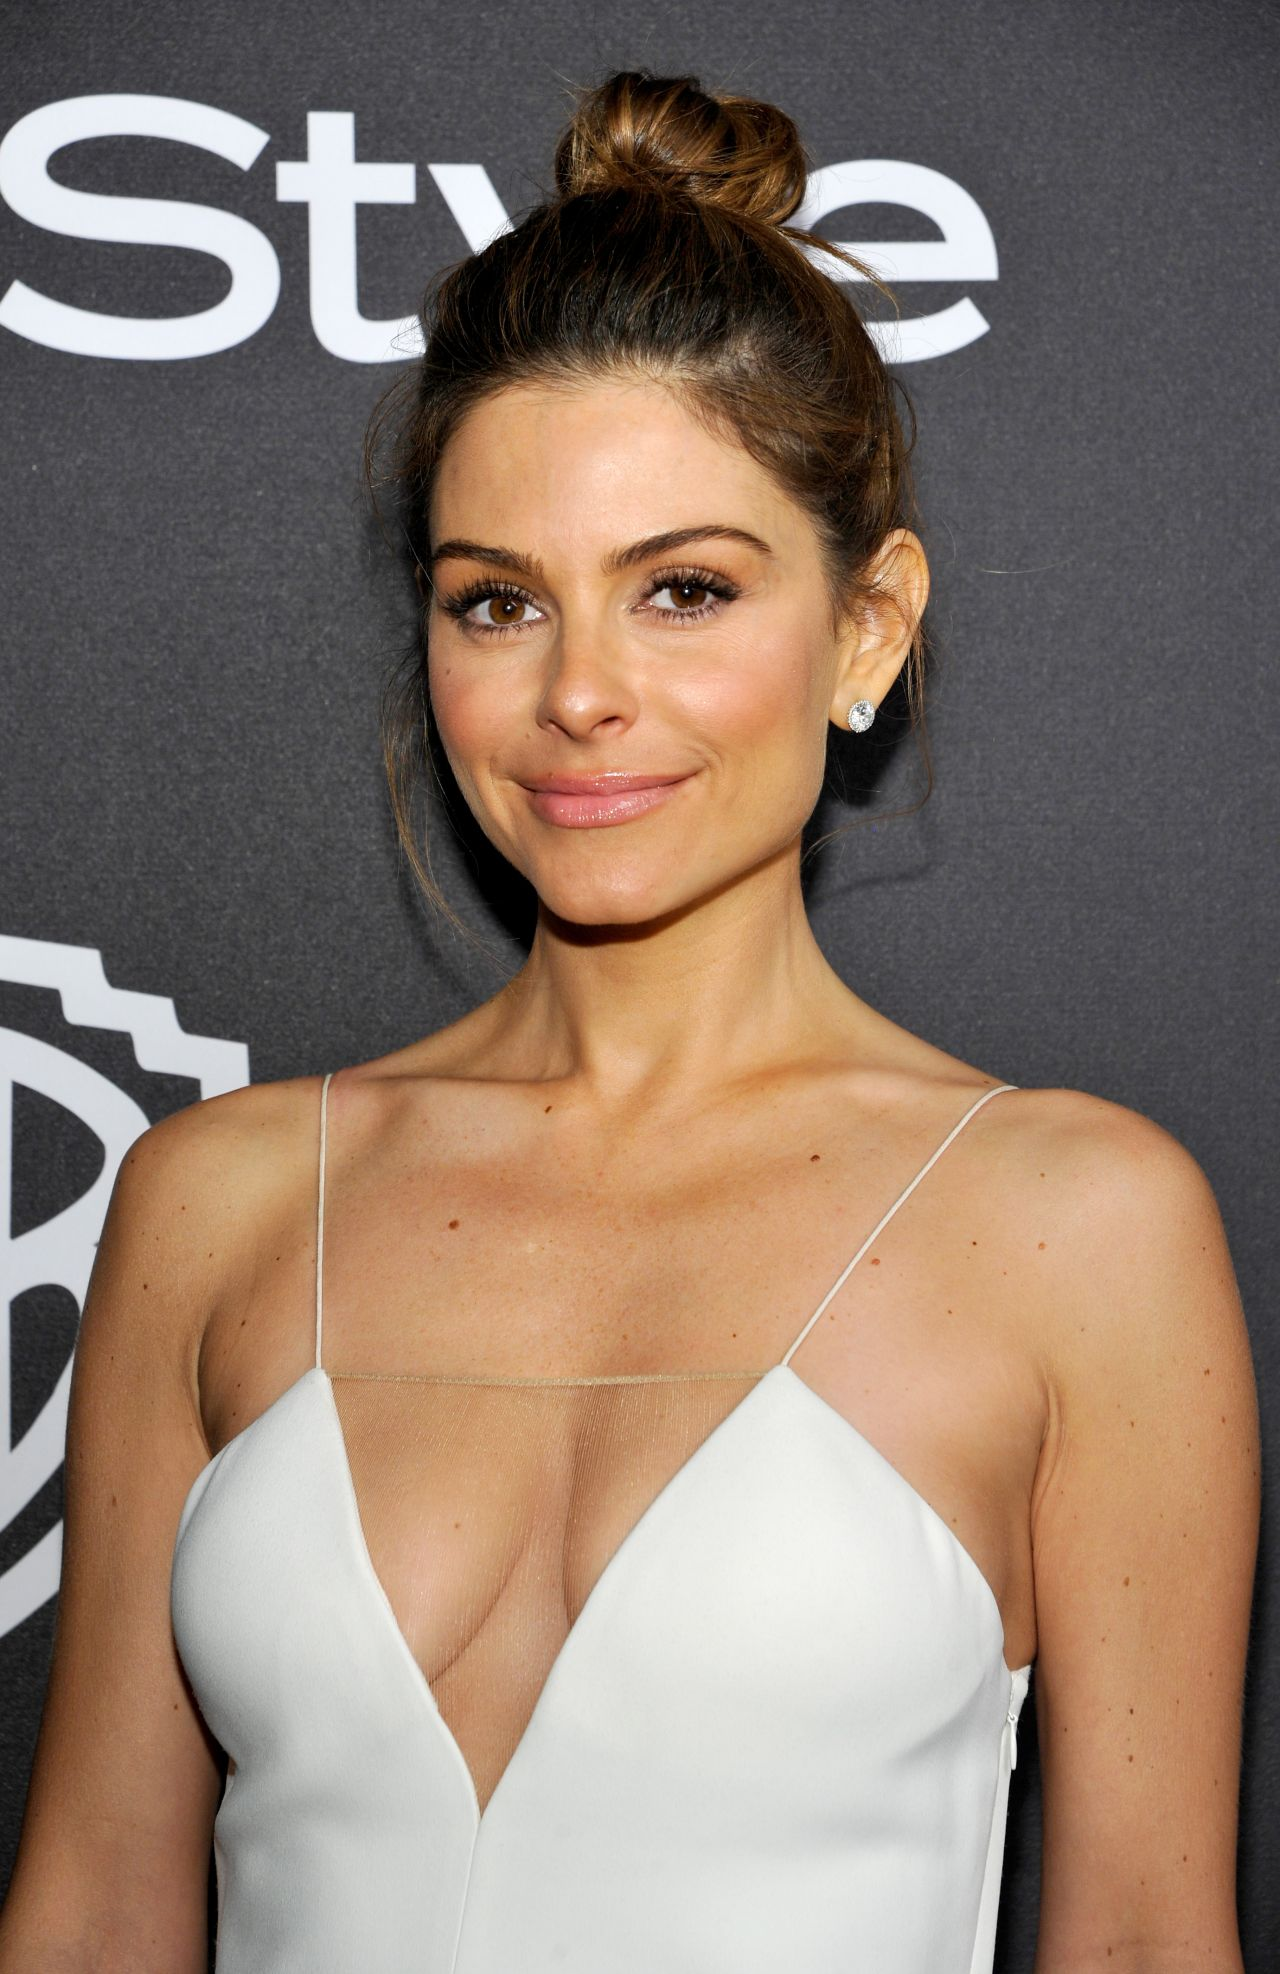 Fotos Maria Menounos naked (25 foto and video), Topless, Hot, Instagram, bra 2018